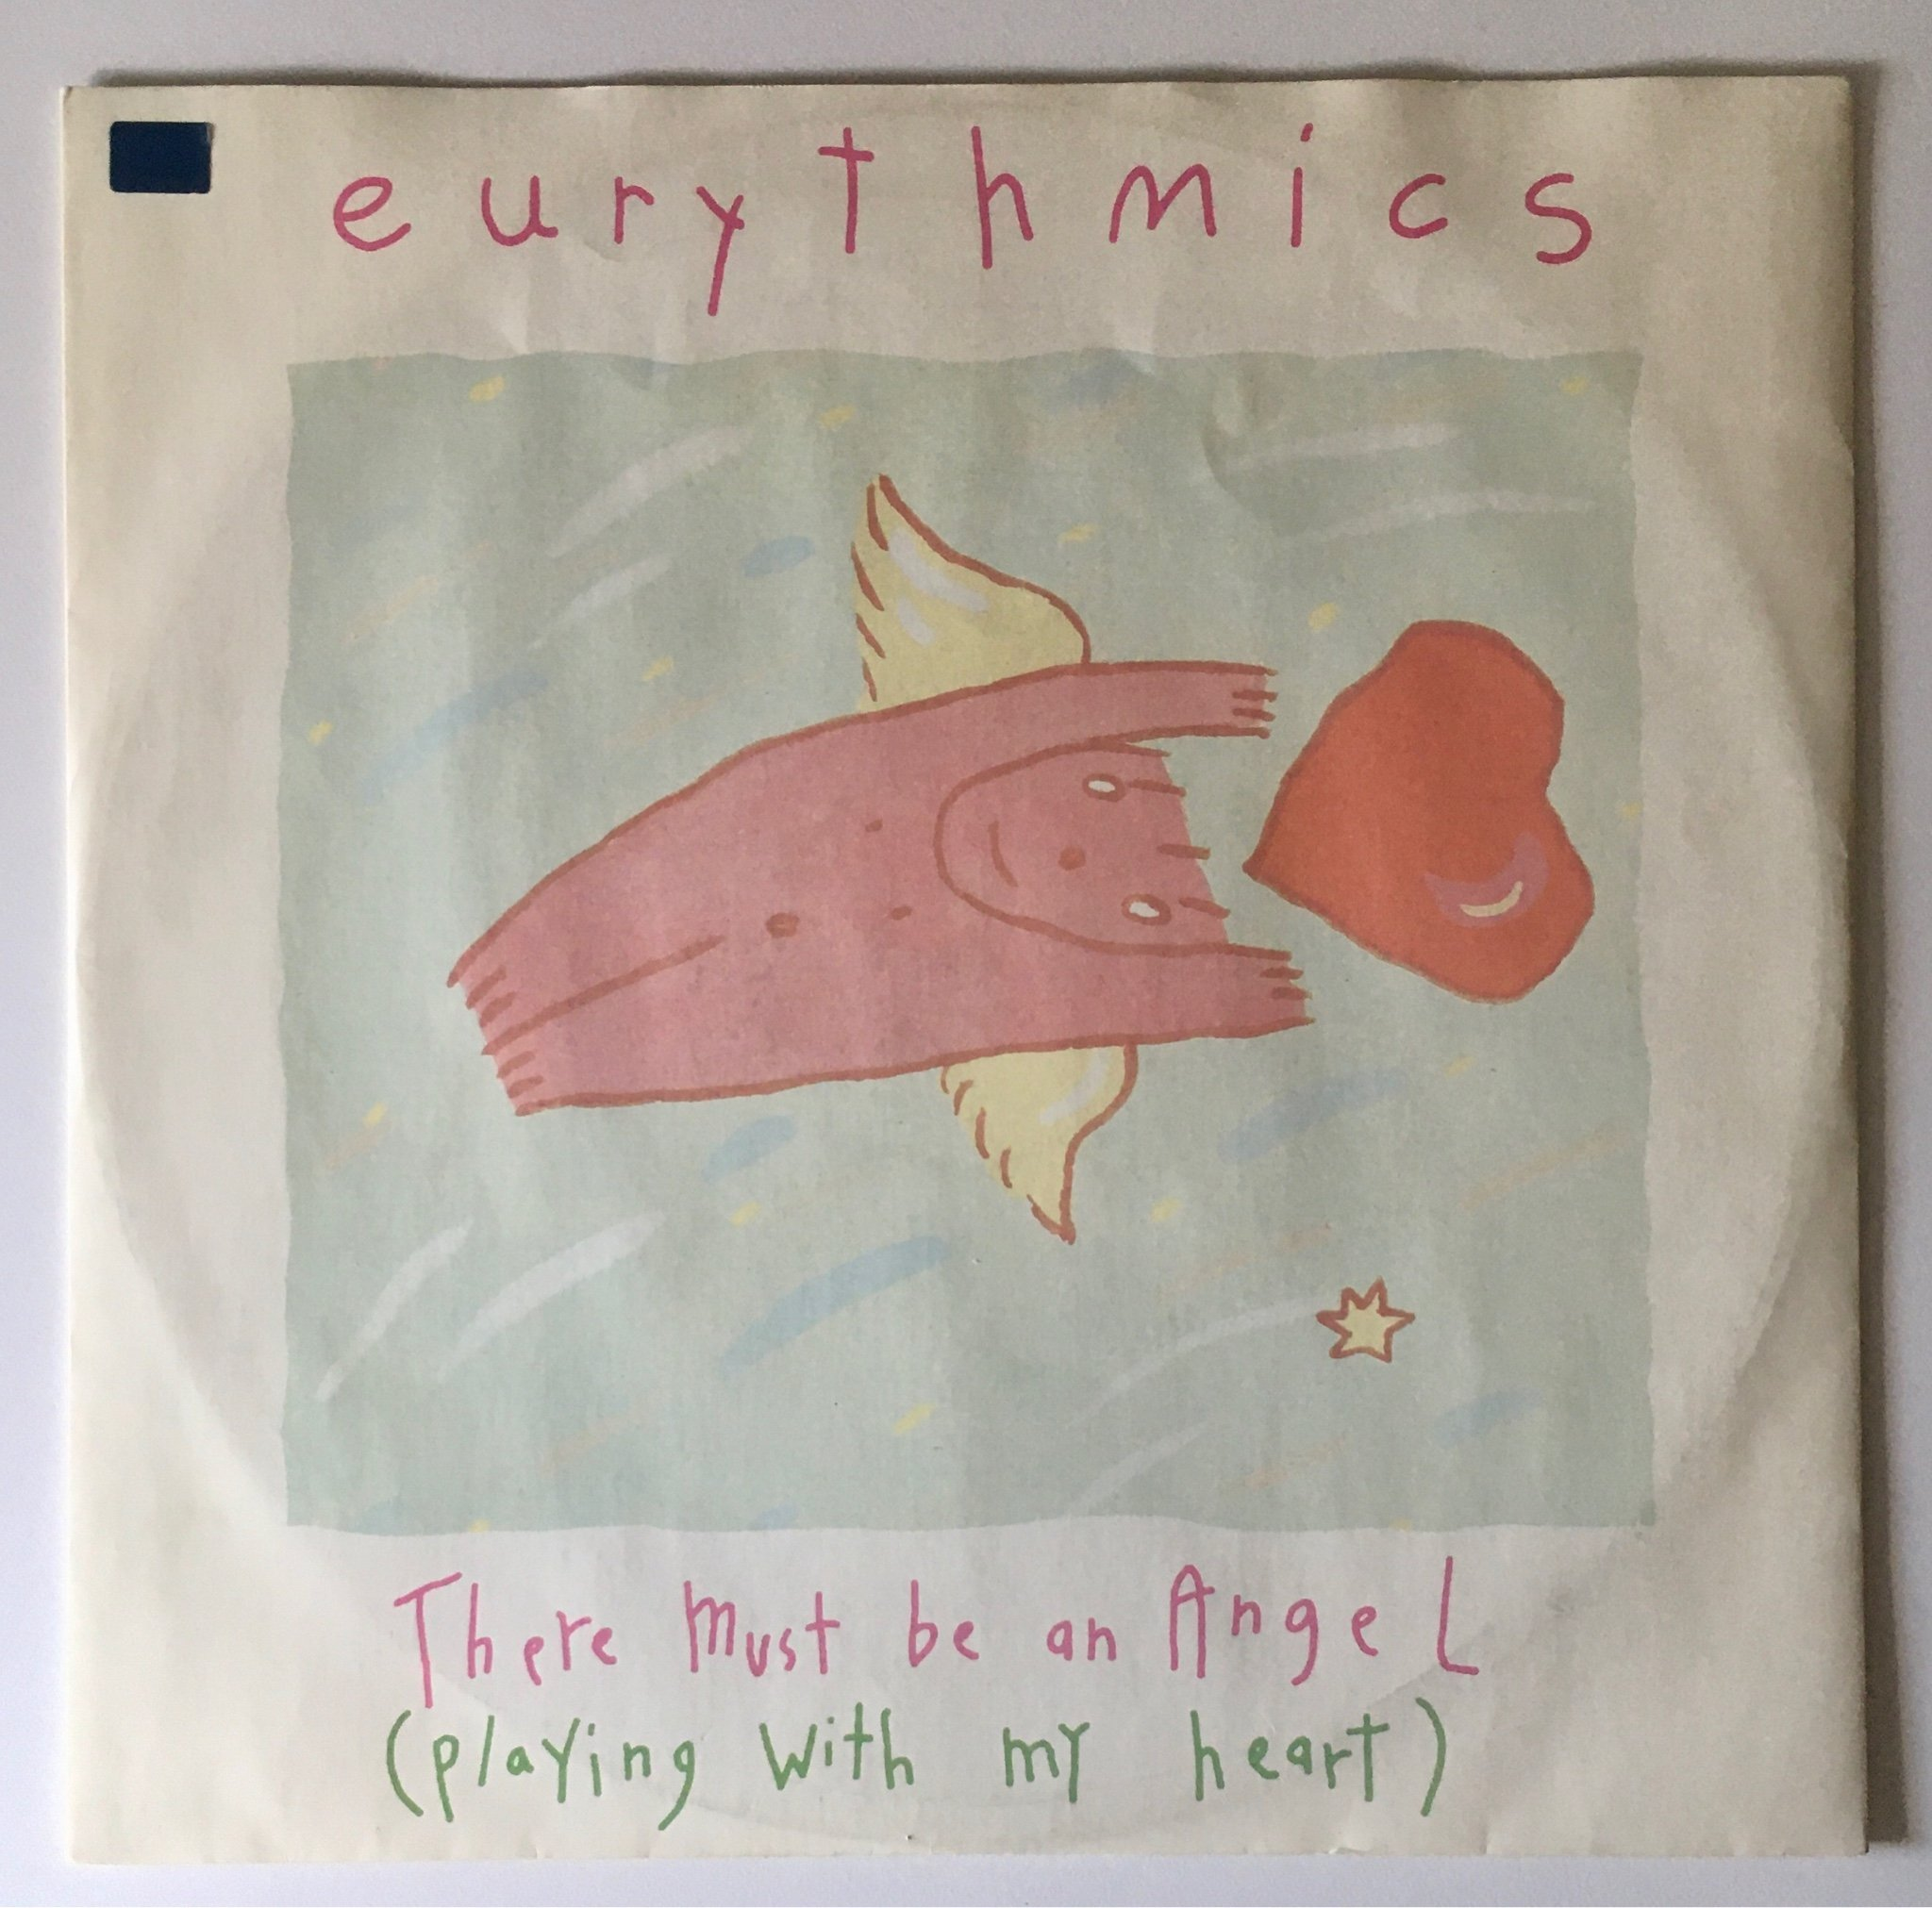 "EURYTHMICS - THERE MUST BE AN ANGEL 12"" maxi Dj synth pop 80,s"